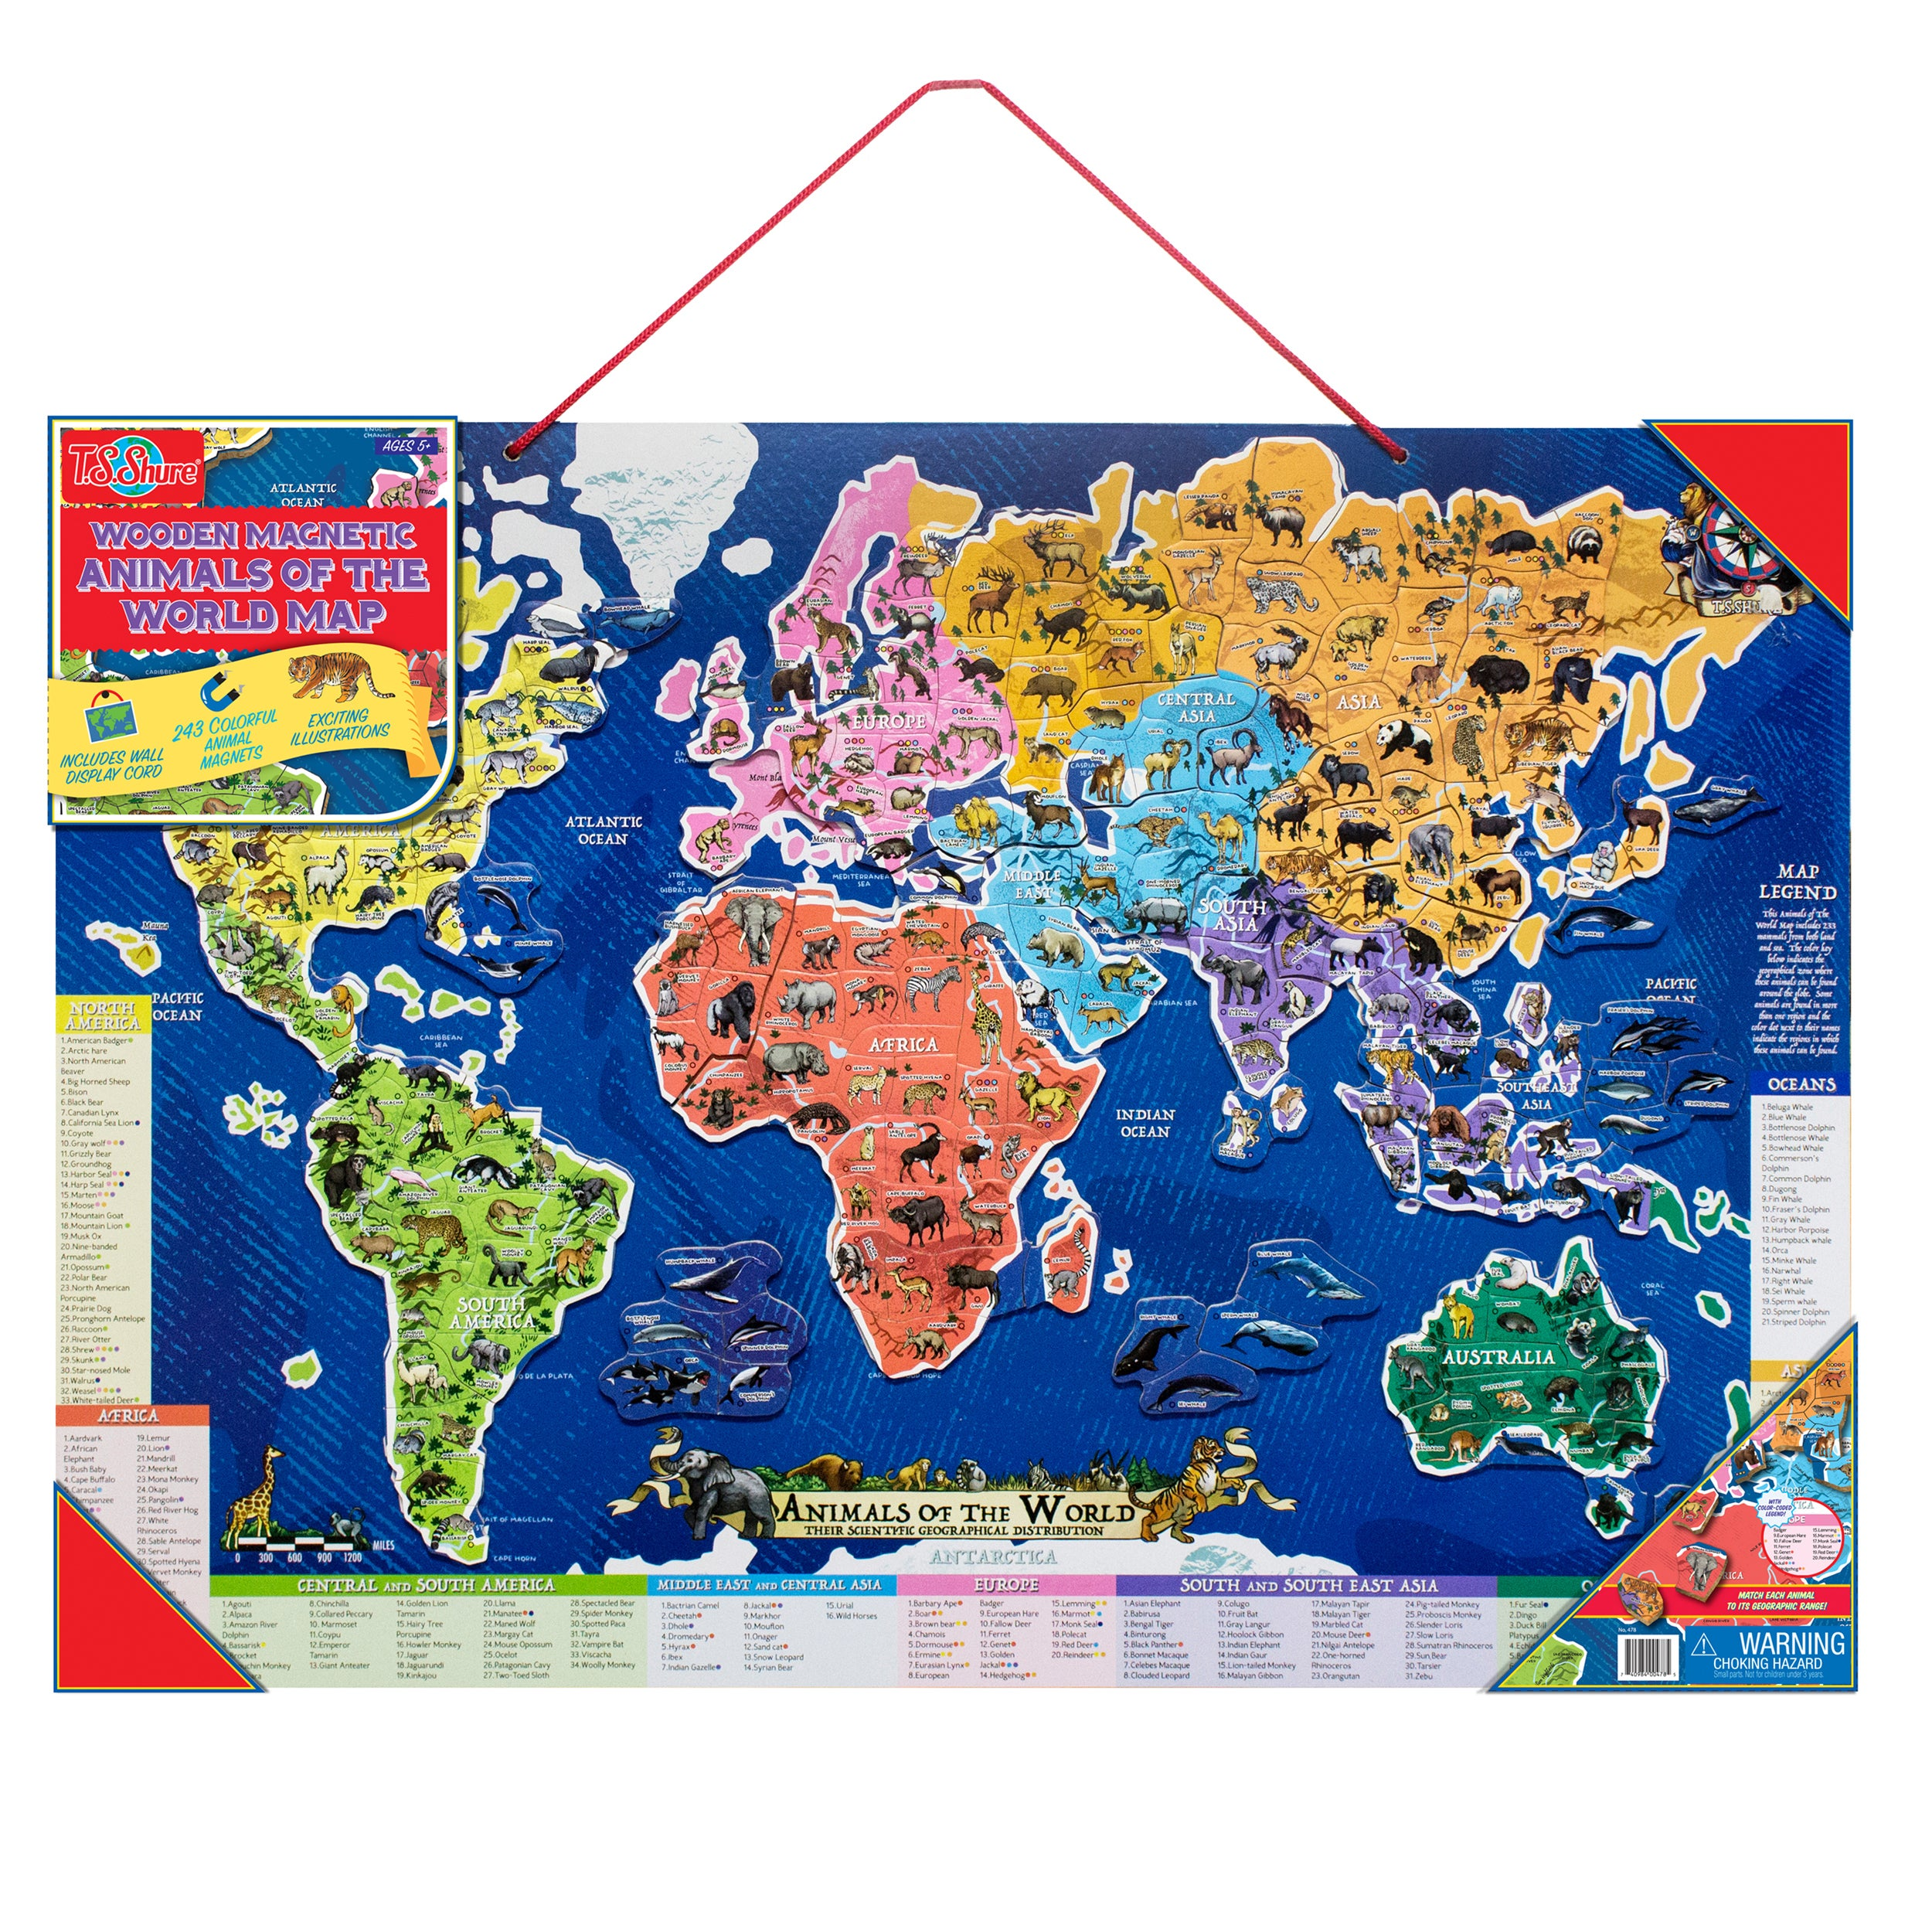 Ts shure wooden magnetic animals of the world map ebay ts shure wooden magnetic animals of the world map gumiabroncs Gallery